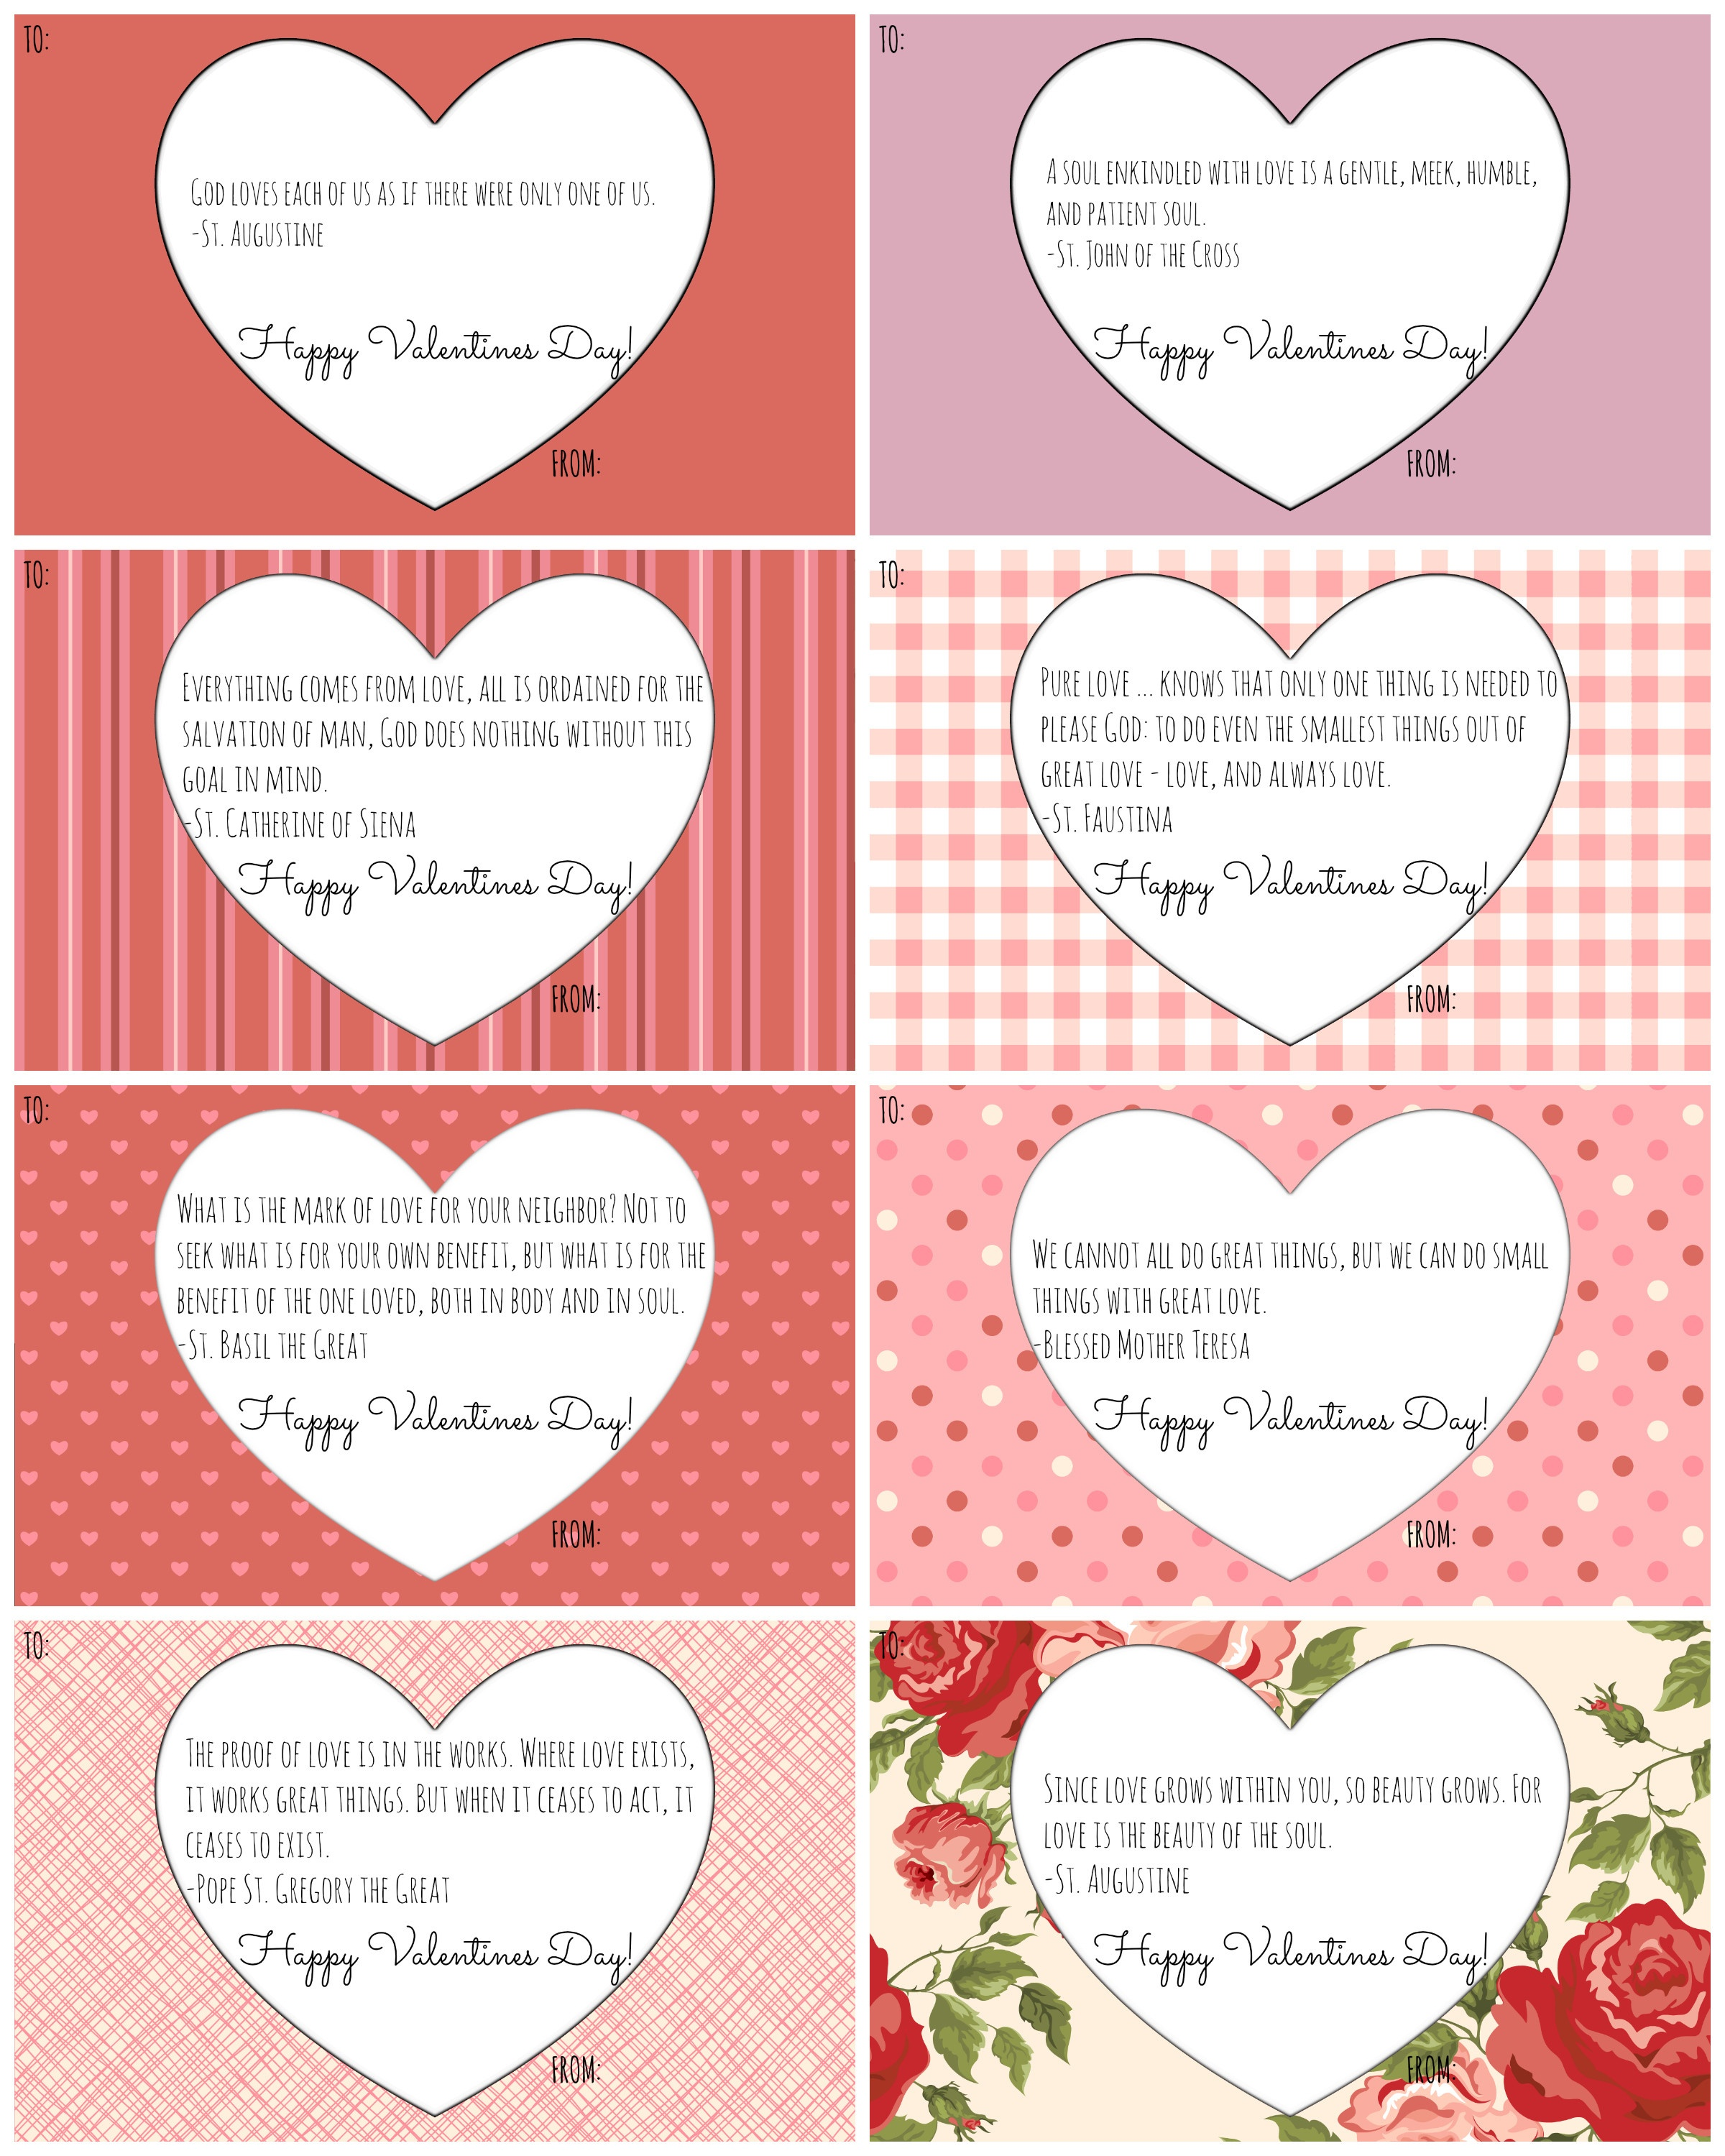 Catholic Valentine Cards: Free Printables! - California To Korea - Free Printable Valentines Day Cards For Her